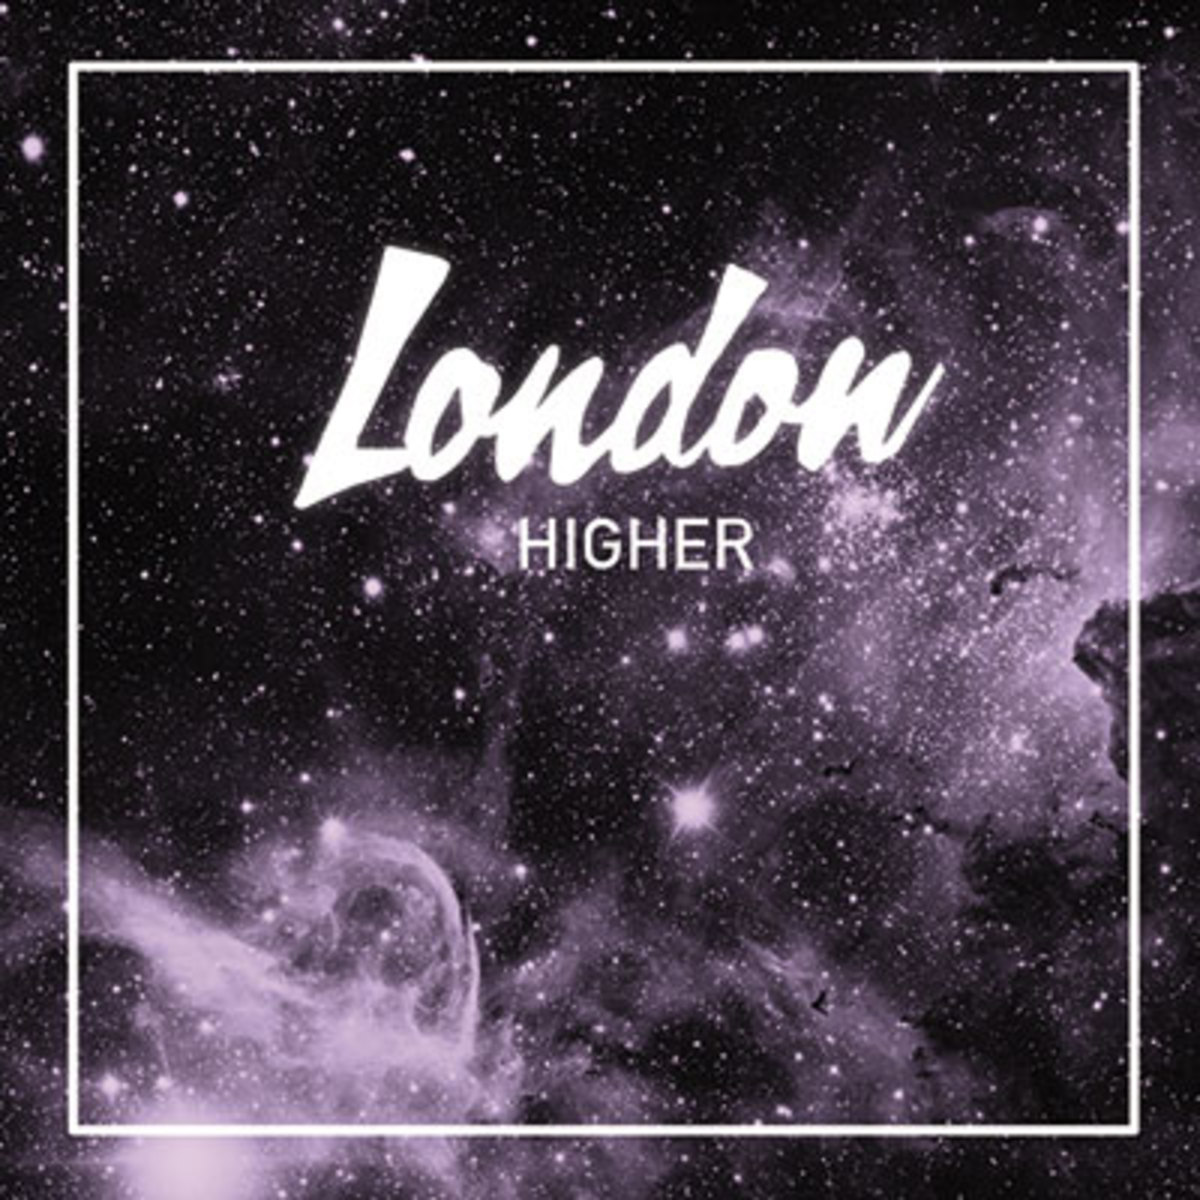 london-higher.jpg